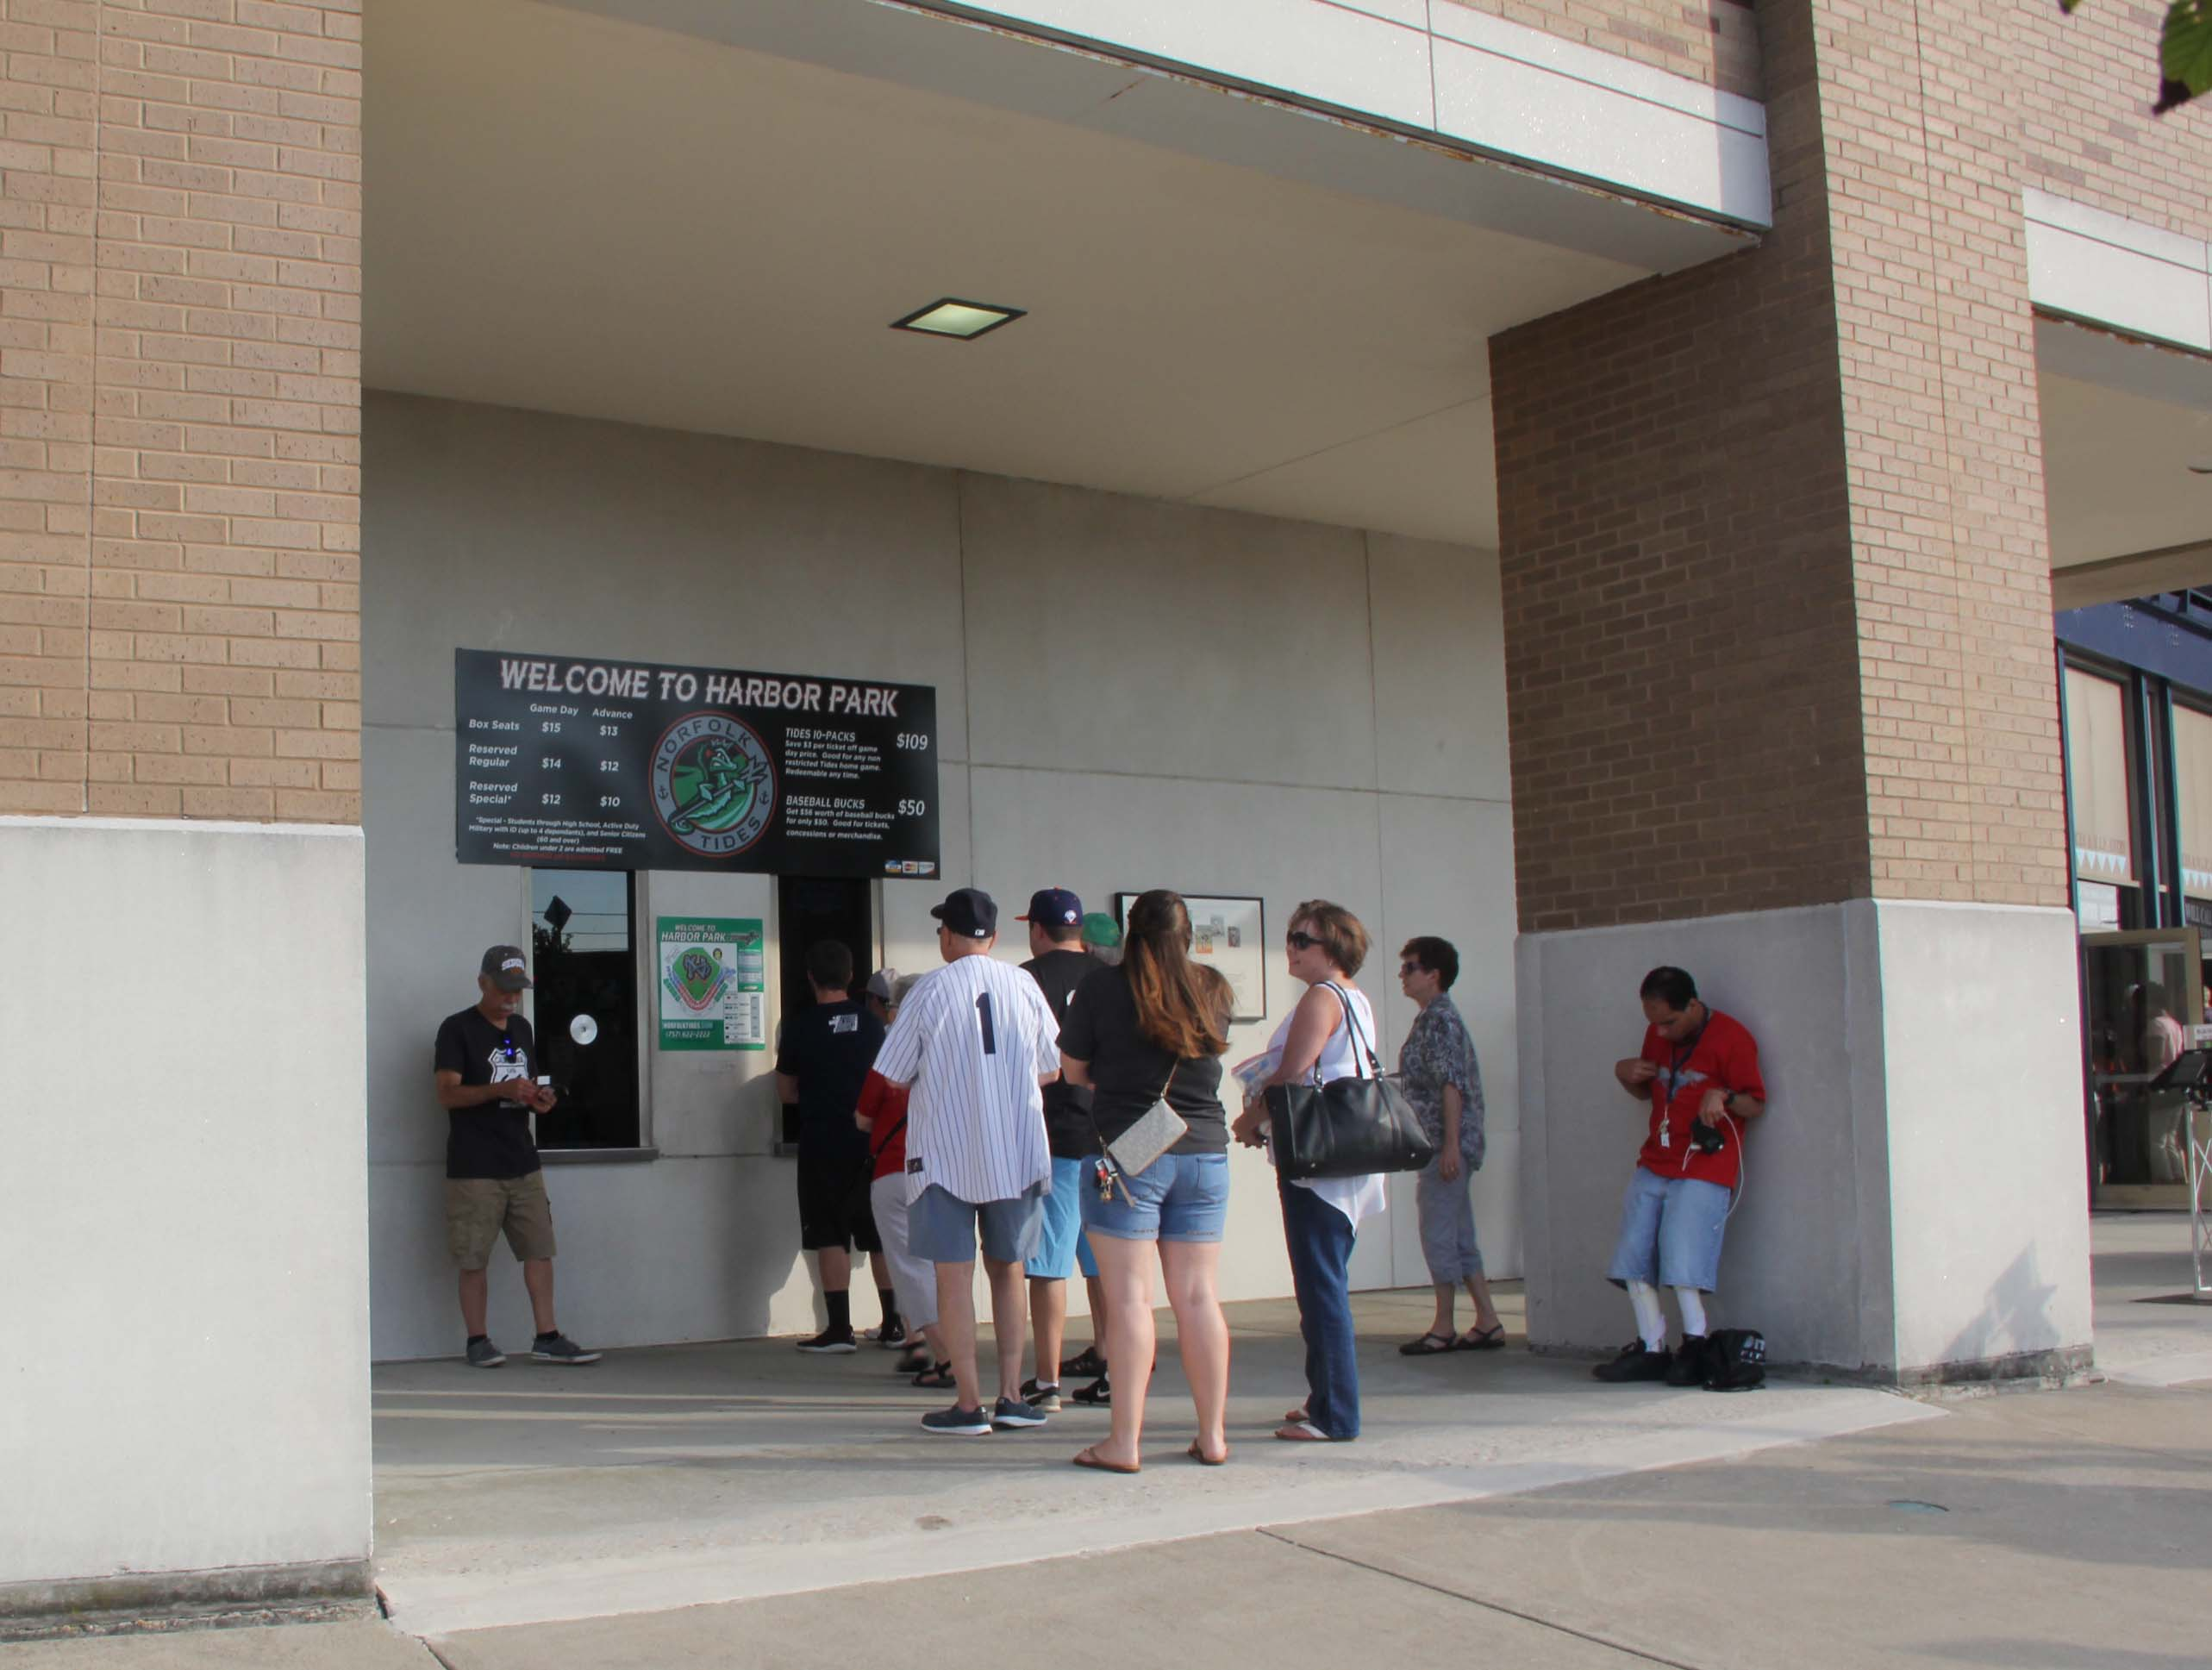 Harbor Park's box office will be expanded this offseason. (MEDILL/Jenna West)